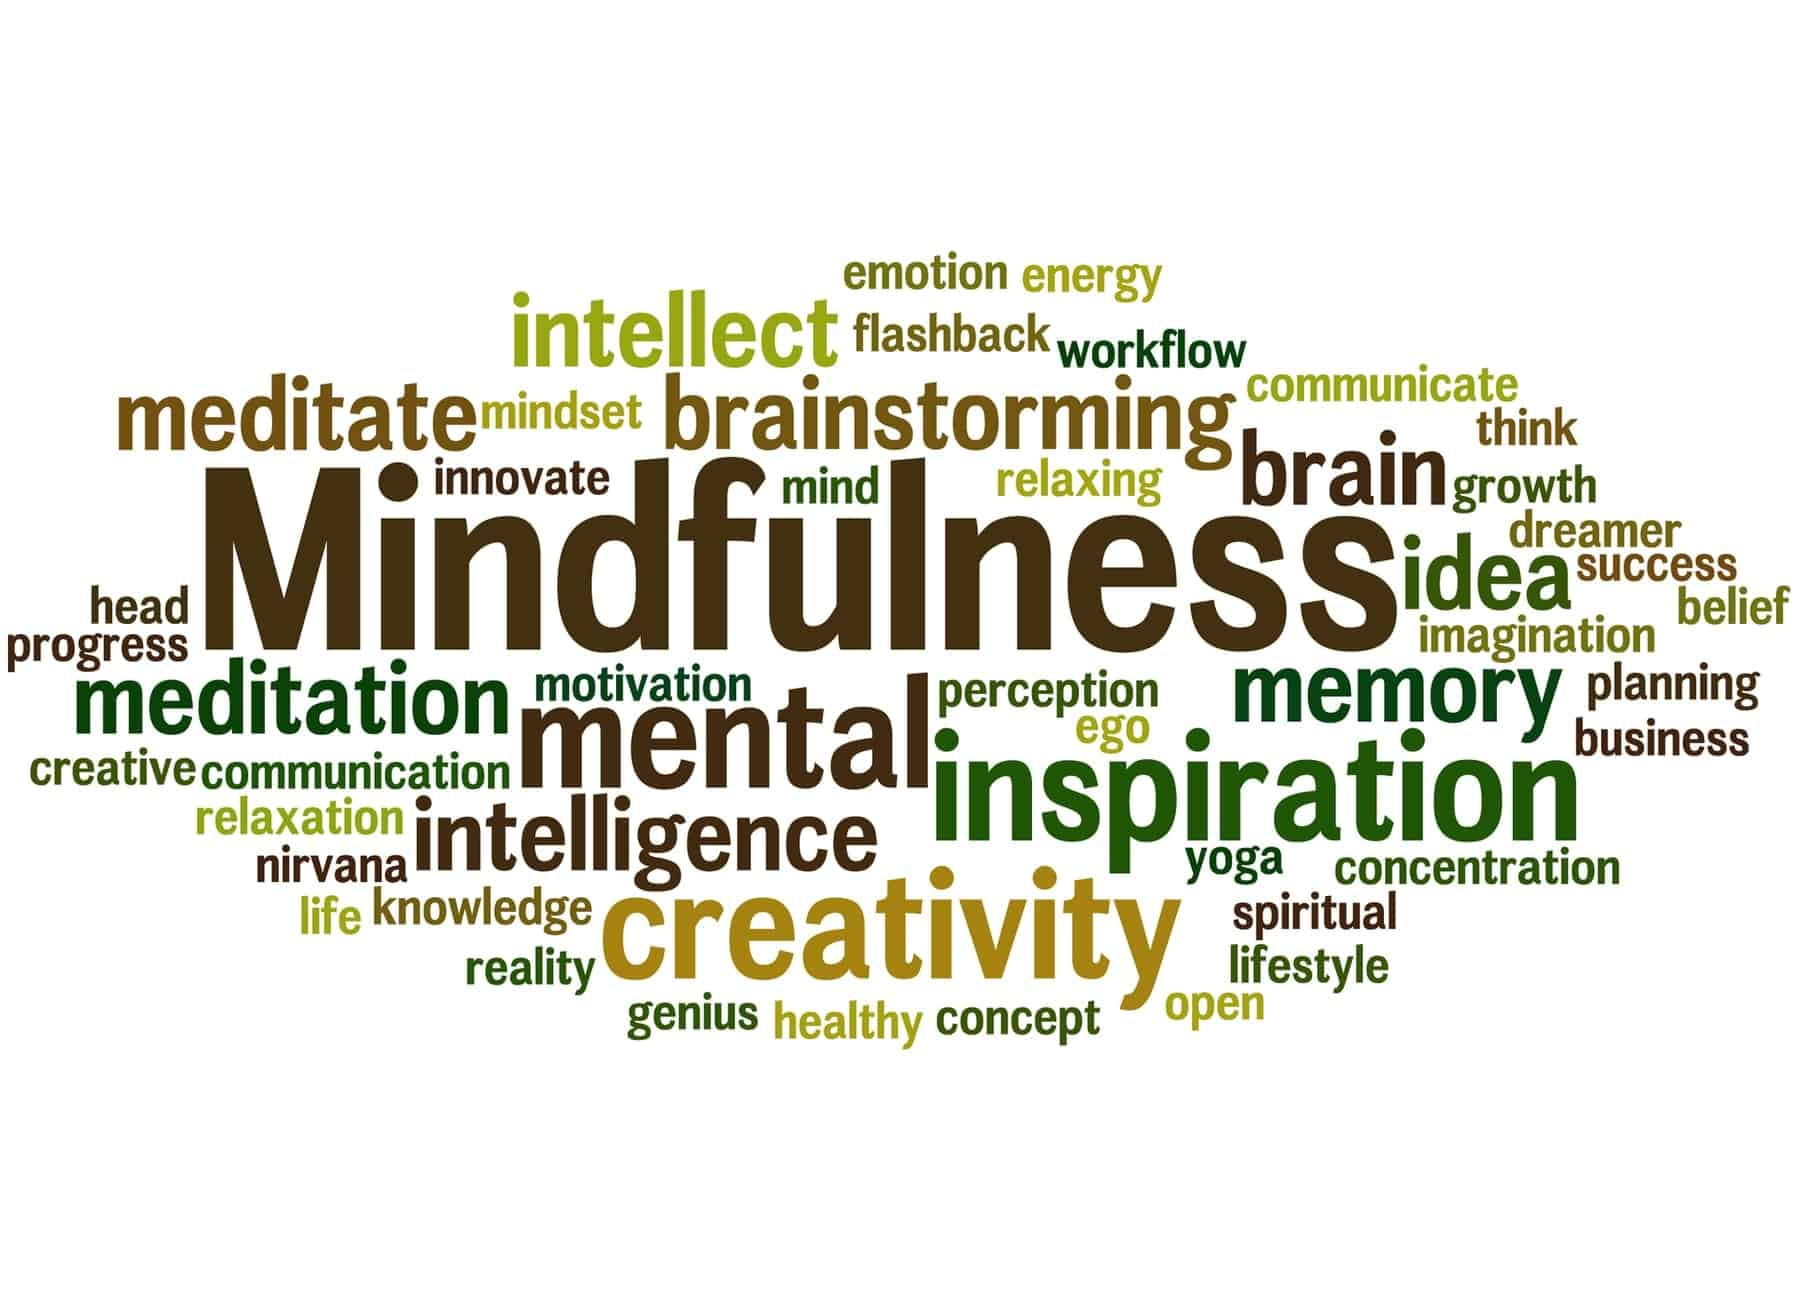 how to achieve right mindfulness